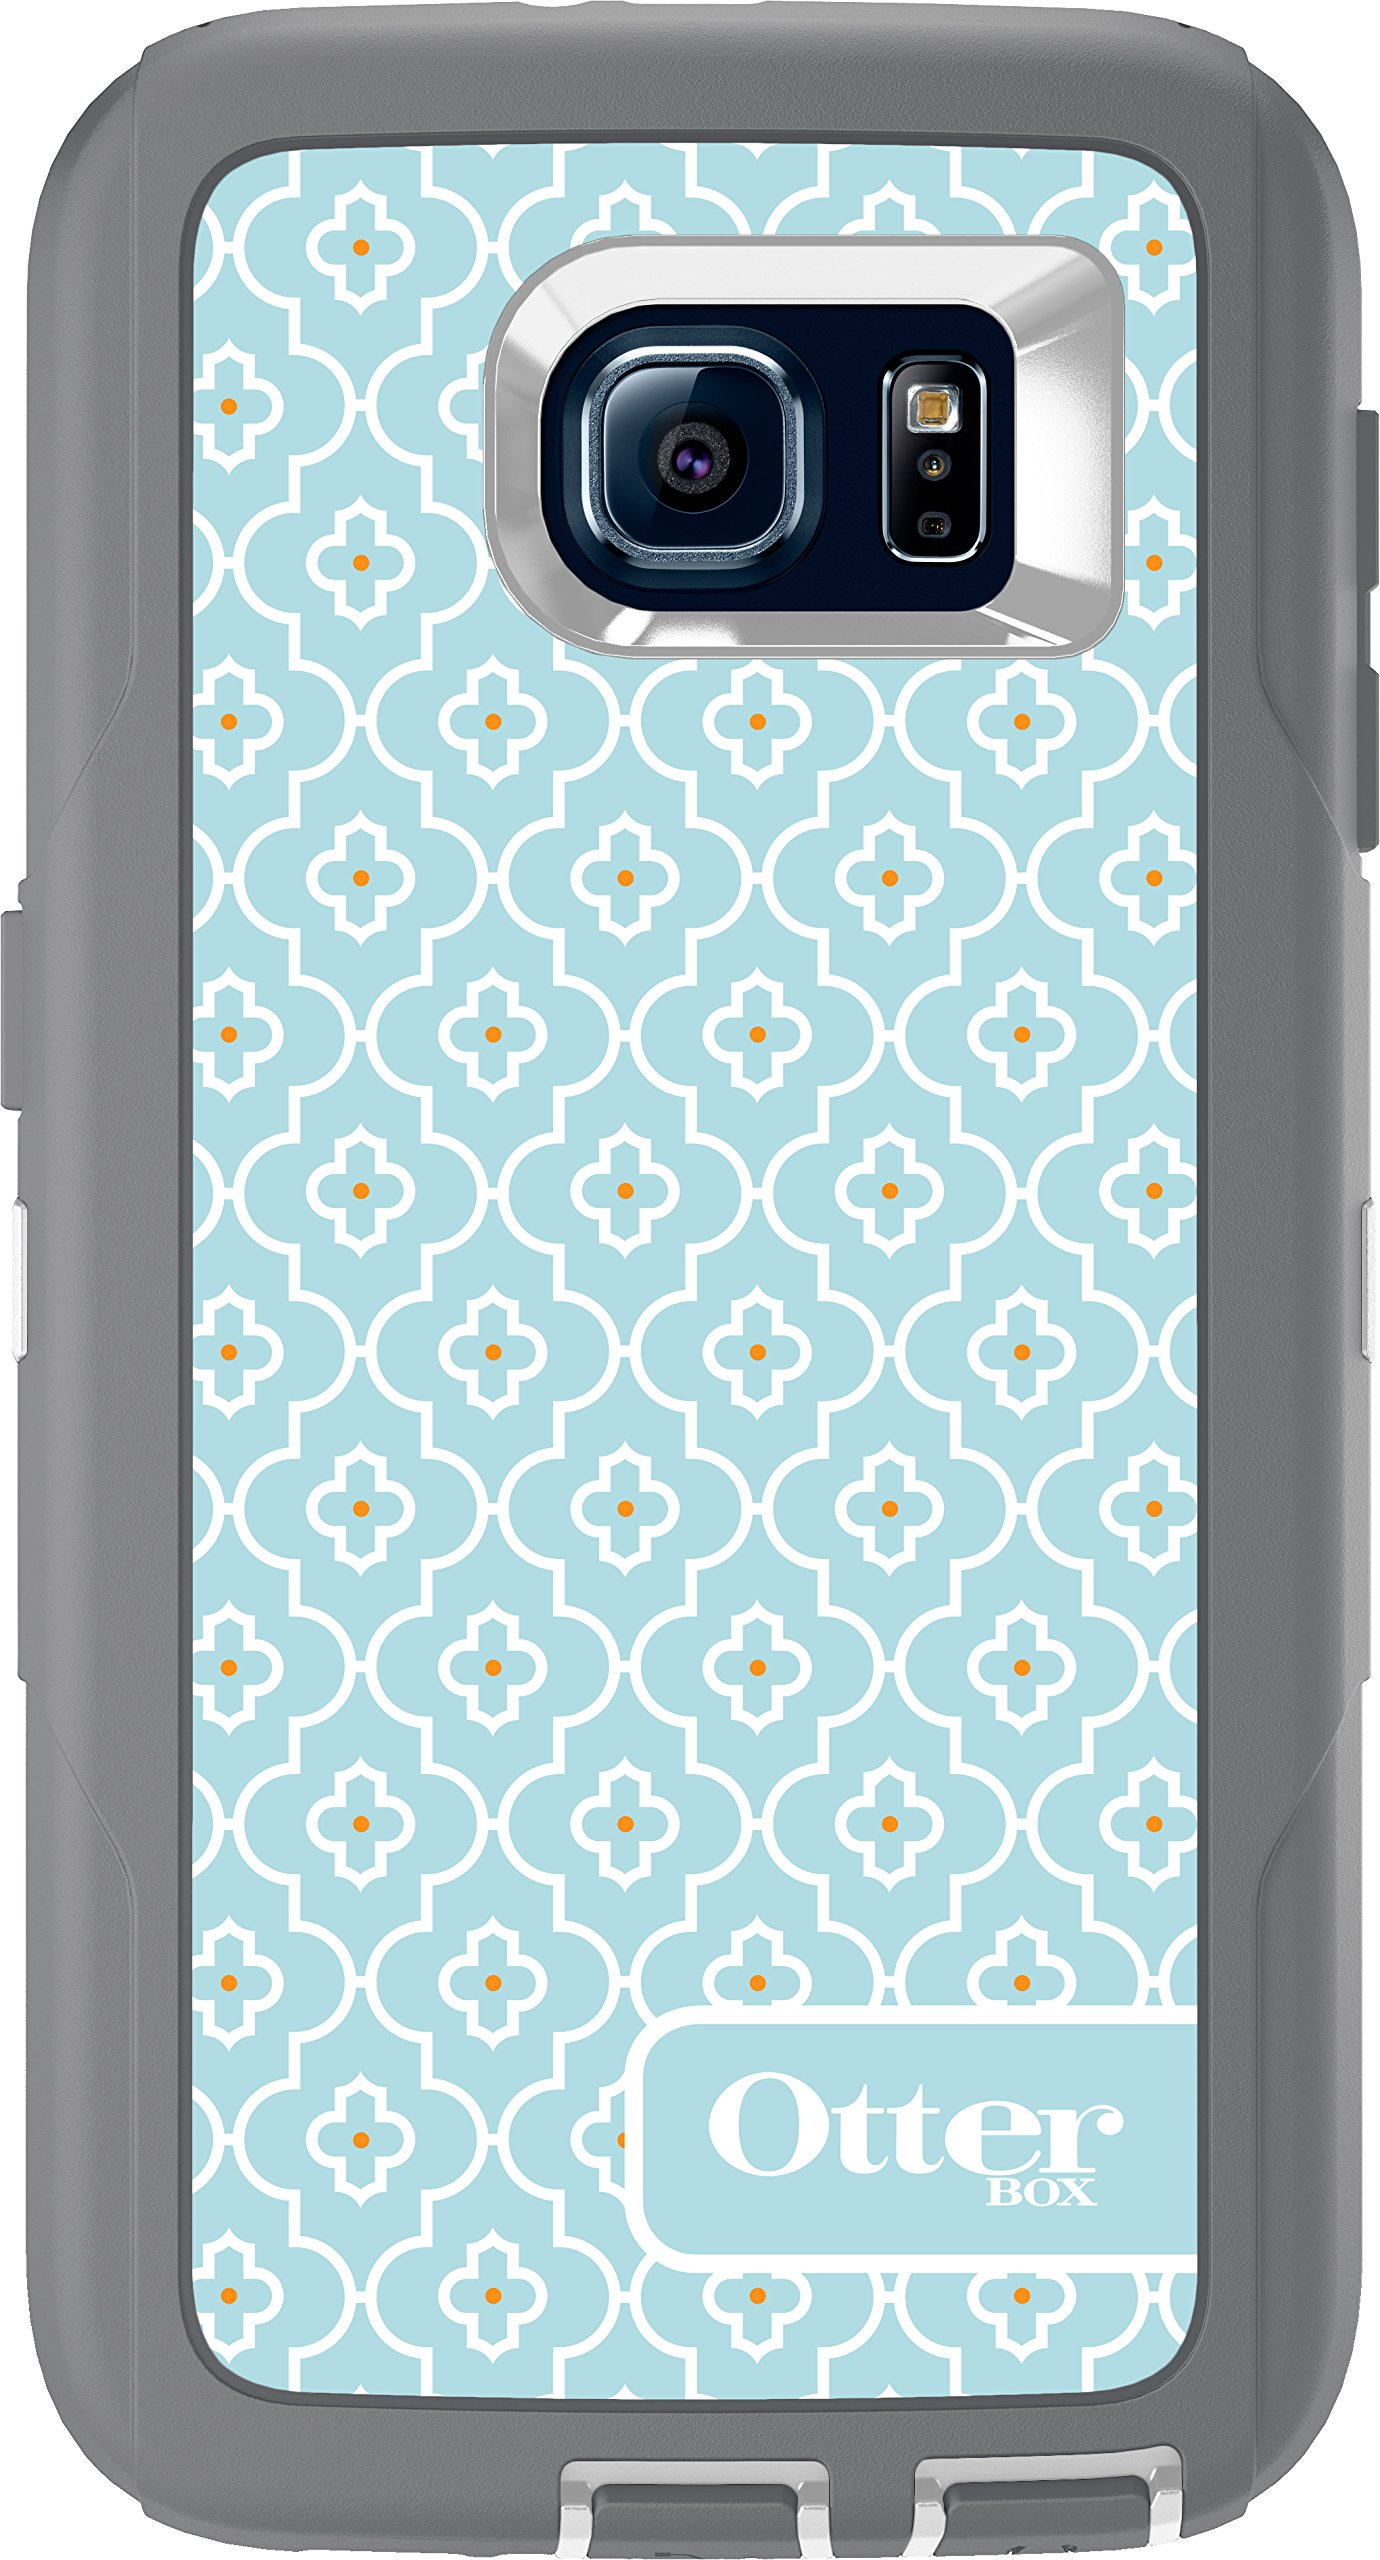 OtterBox DEFENDER Case for Samsung Galaxy S6 (ONLY) (GREY/MOROCCAN SKY)